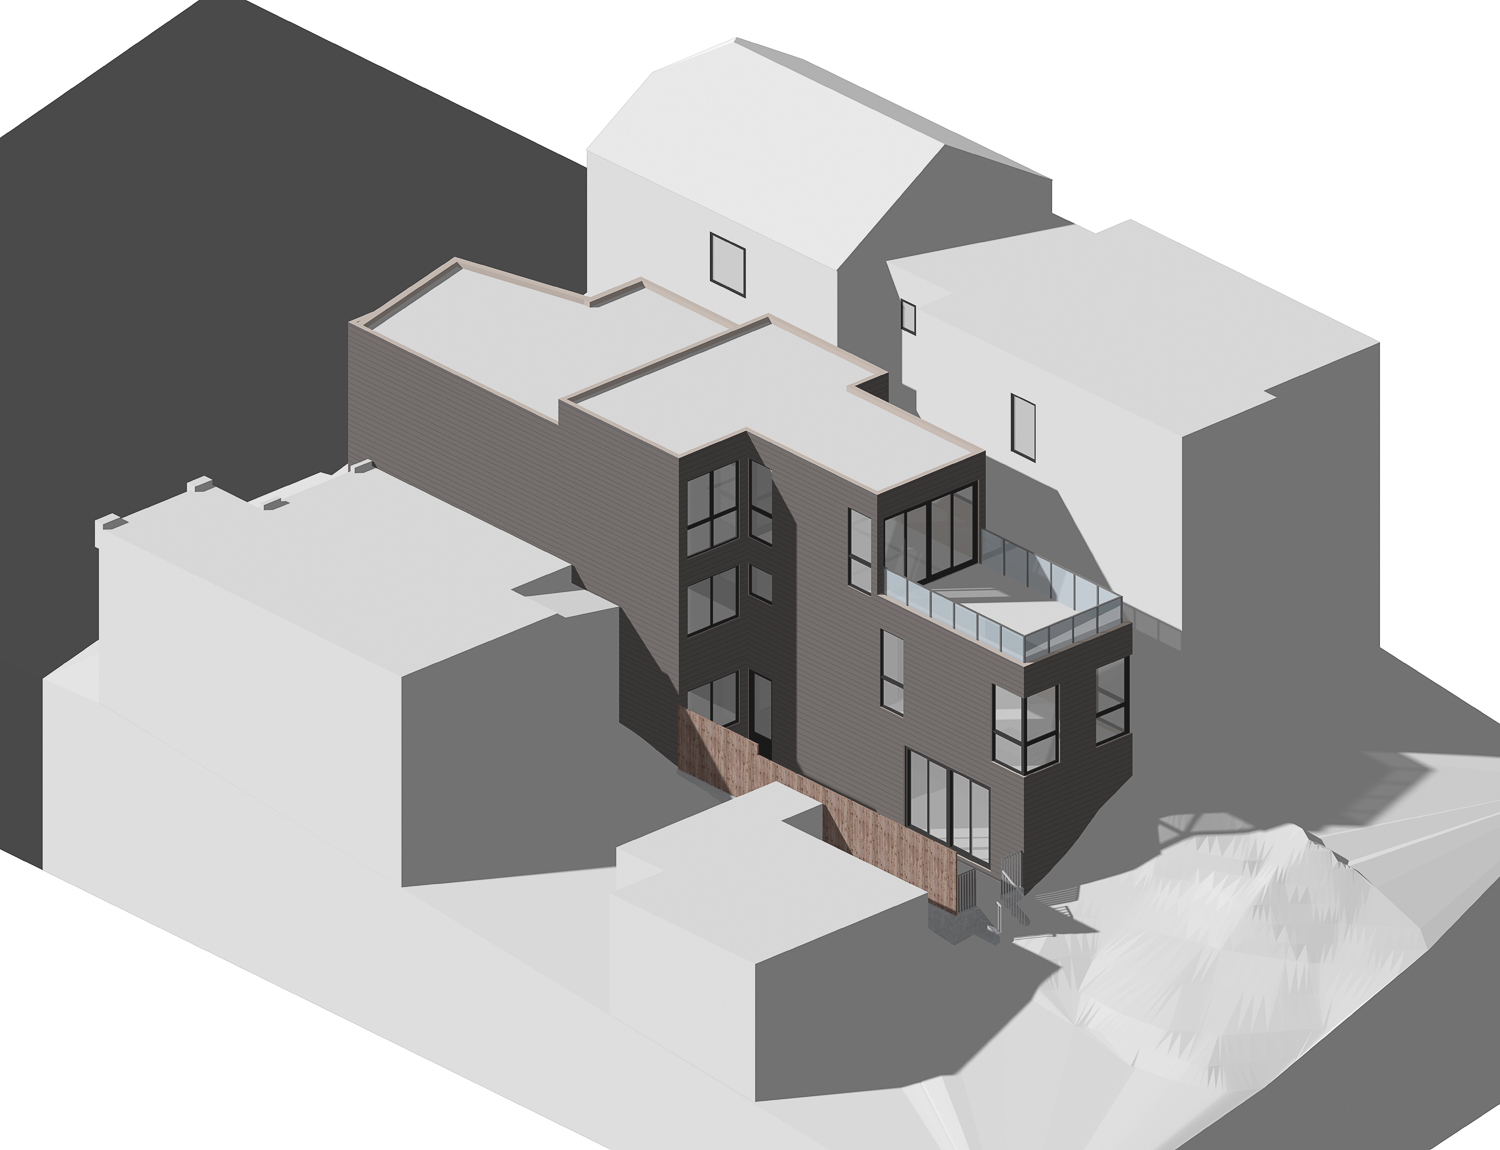 731 Peralta Avenue aerial view, elevation by SIA Consulting